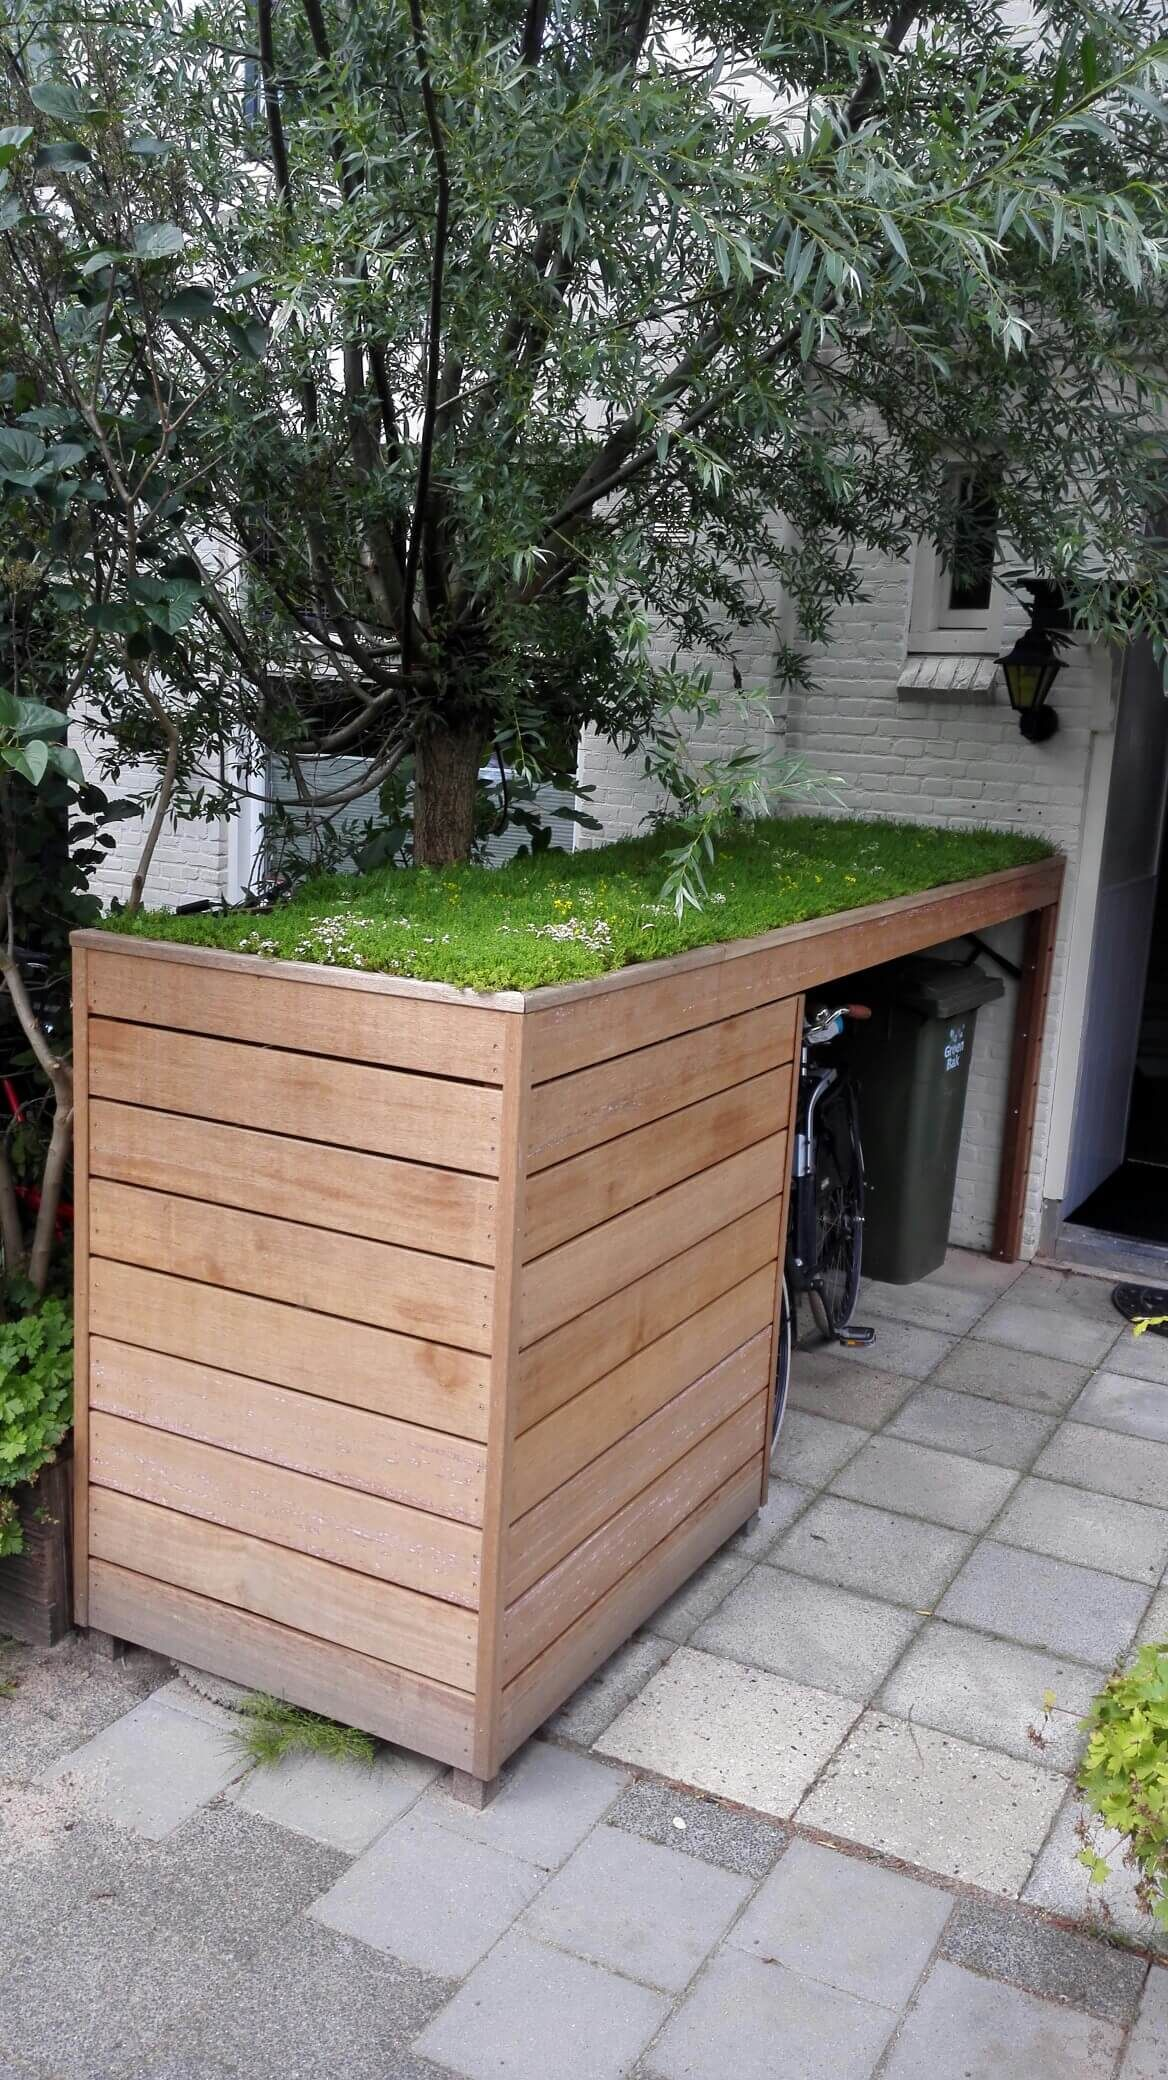 27 Unique Small Storage Shed Ideas for your Garden | Pinterest ...